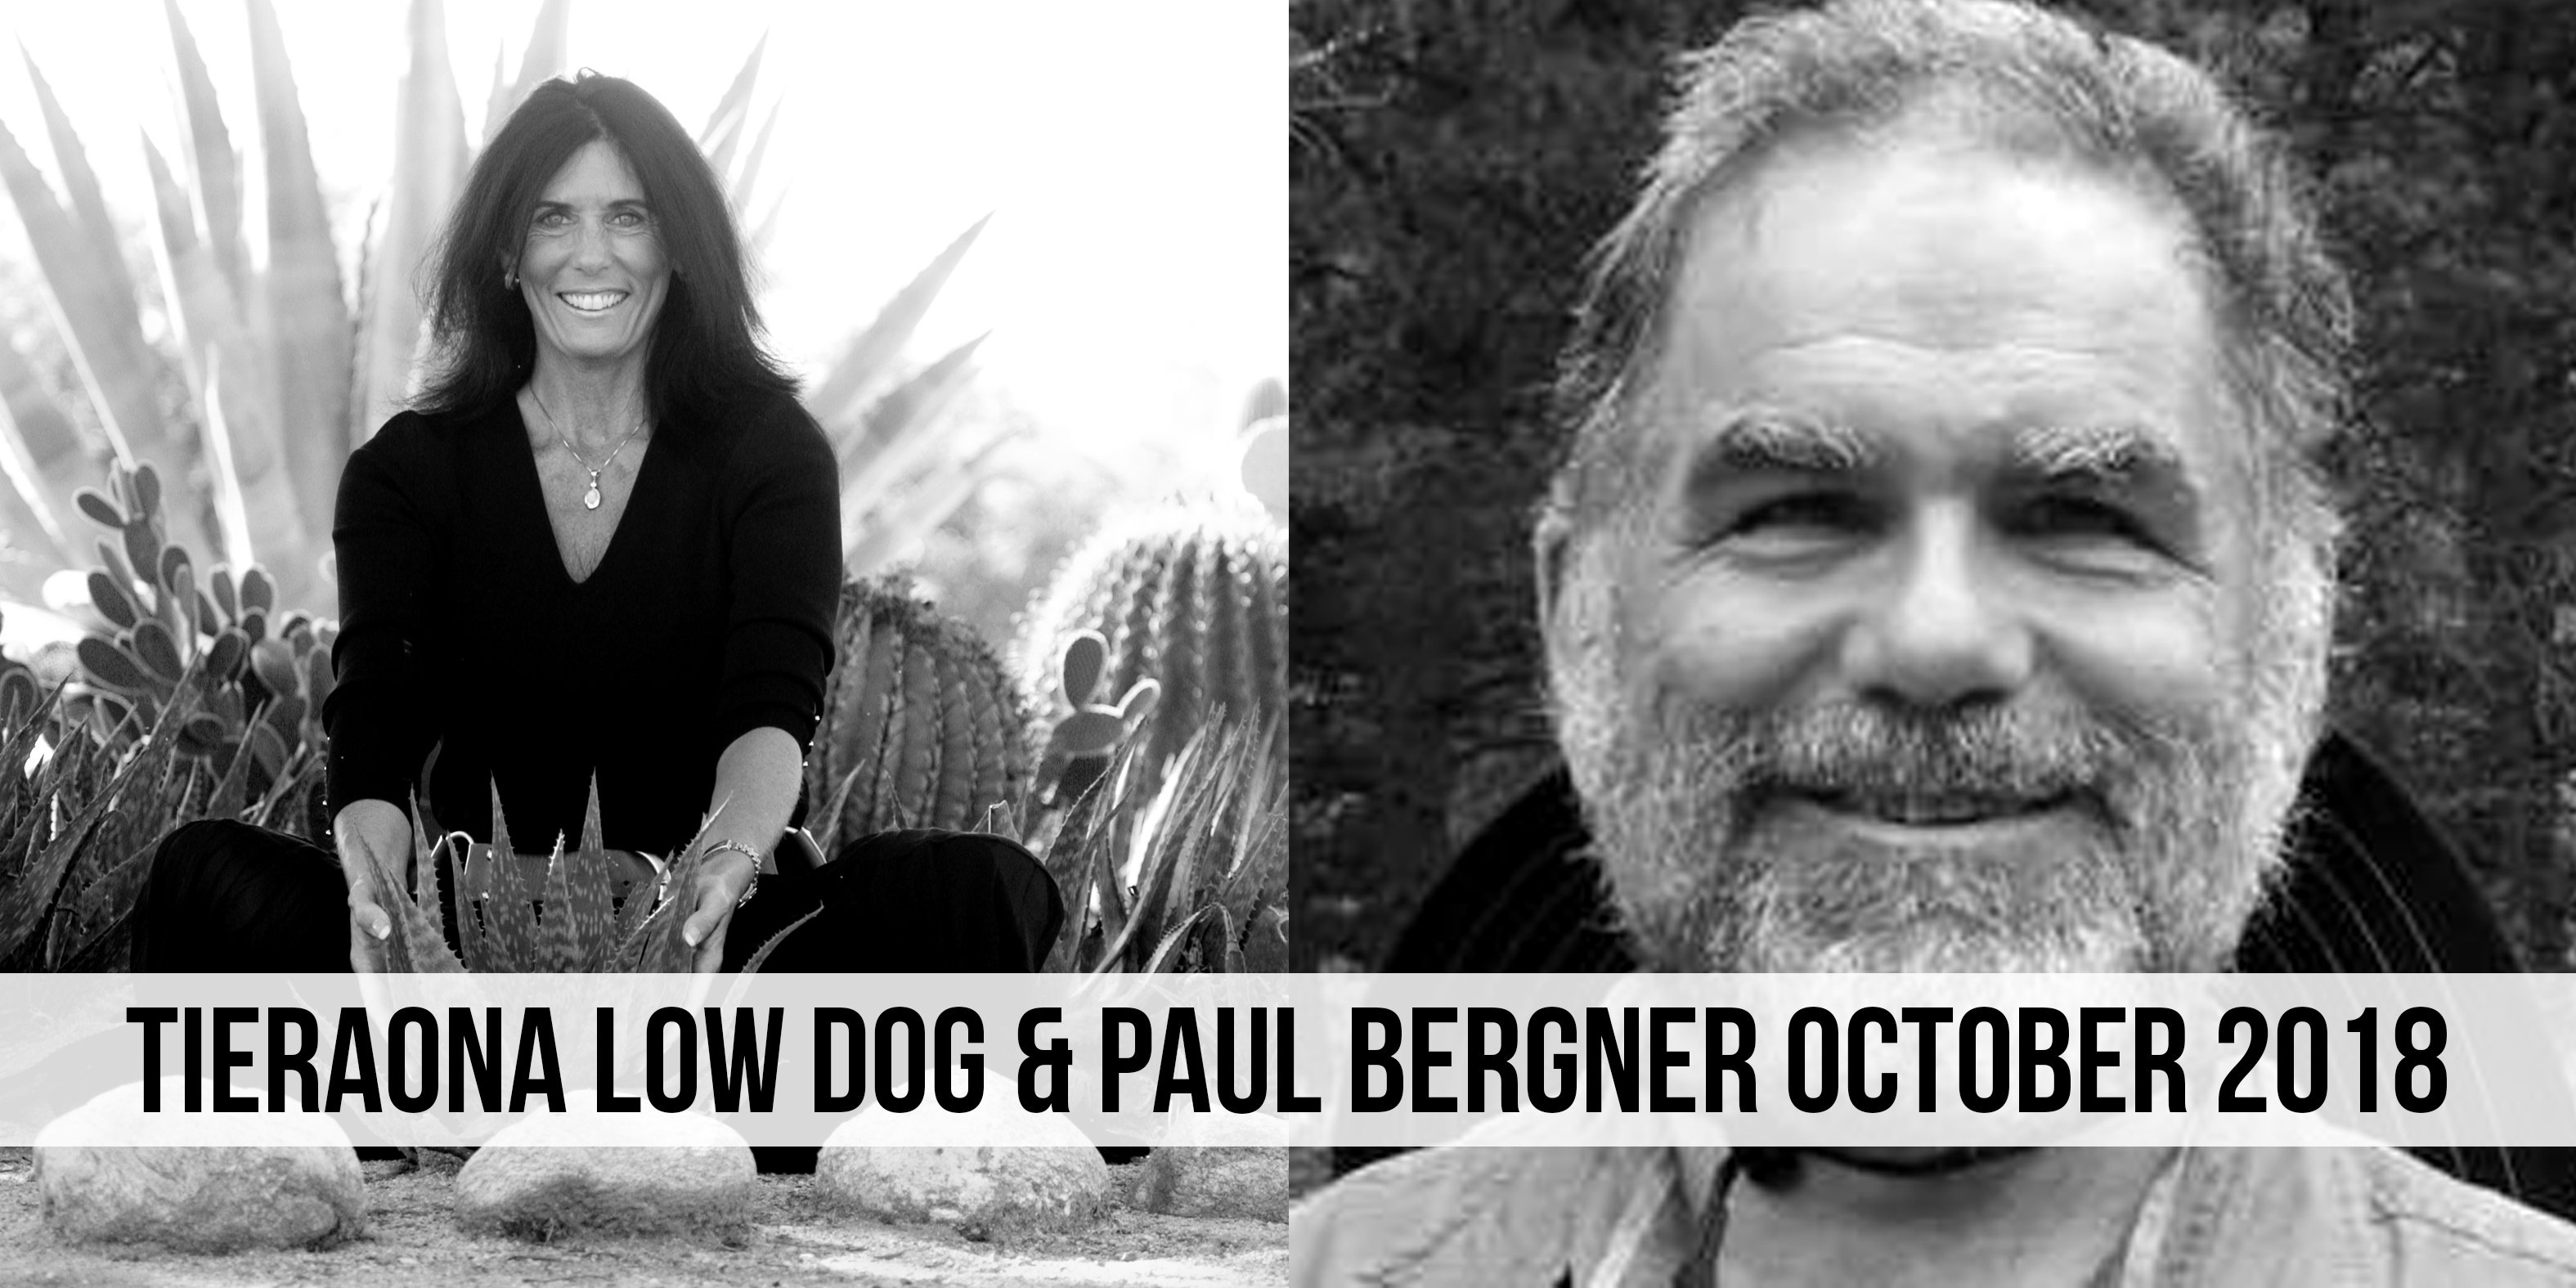 Tieraona Low Dog & Paul Bergner